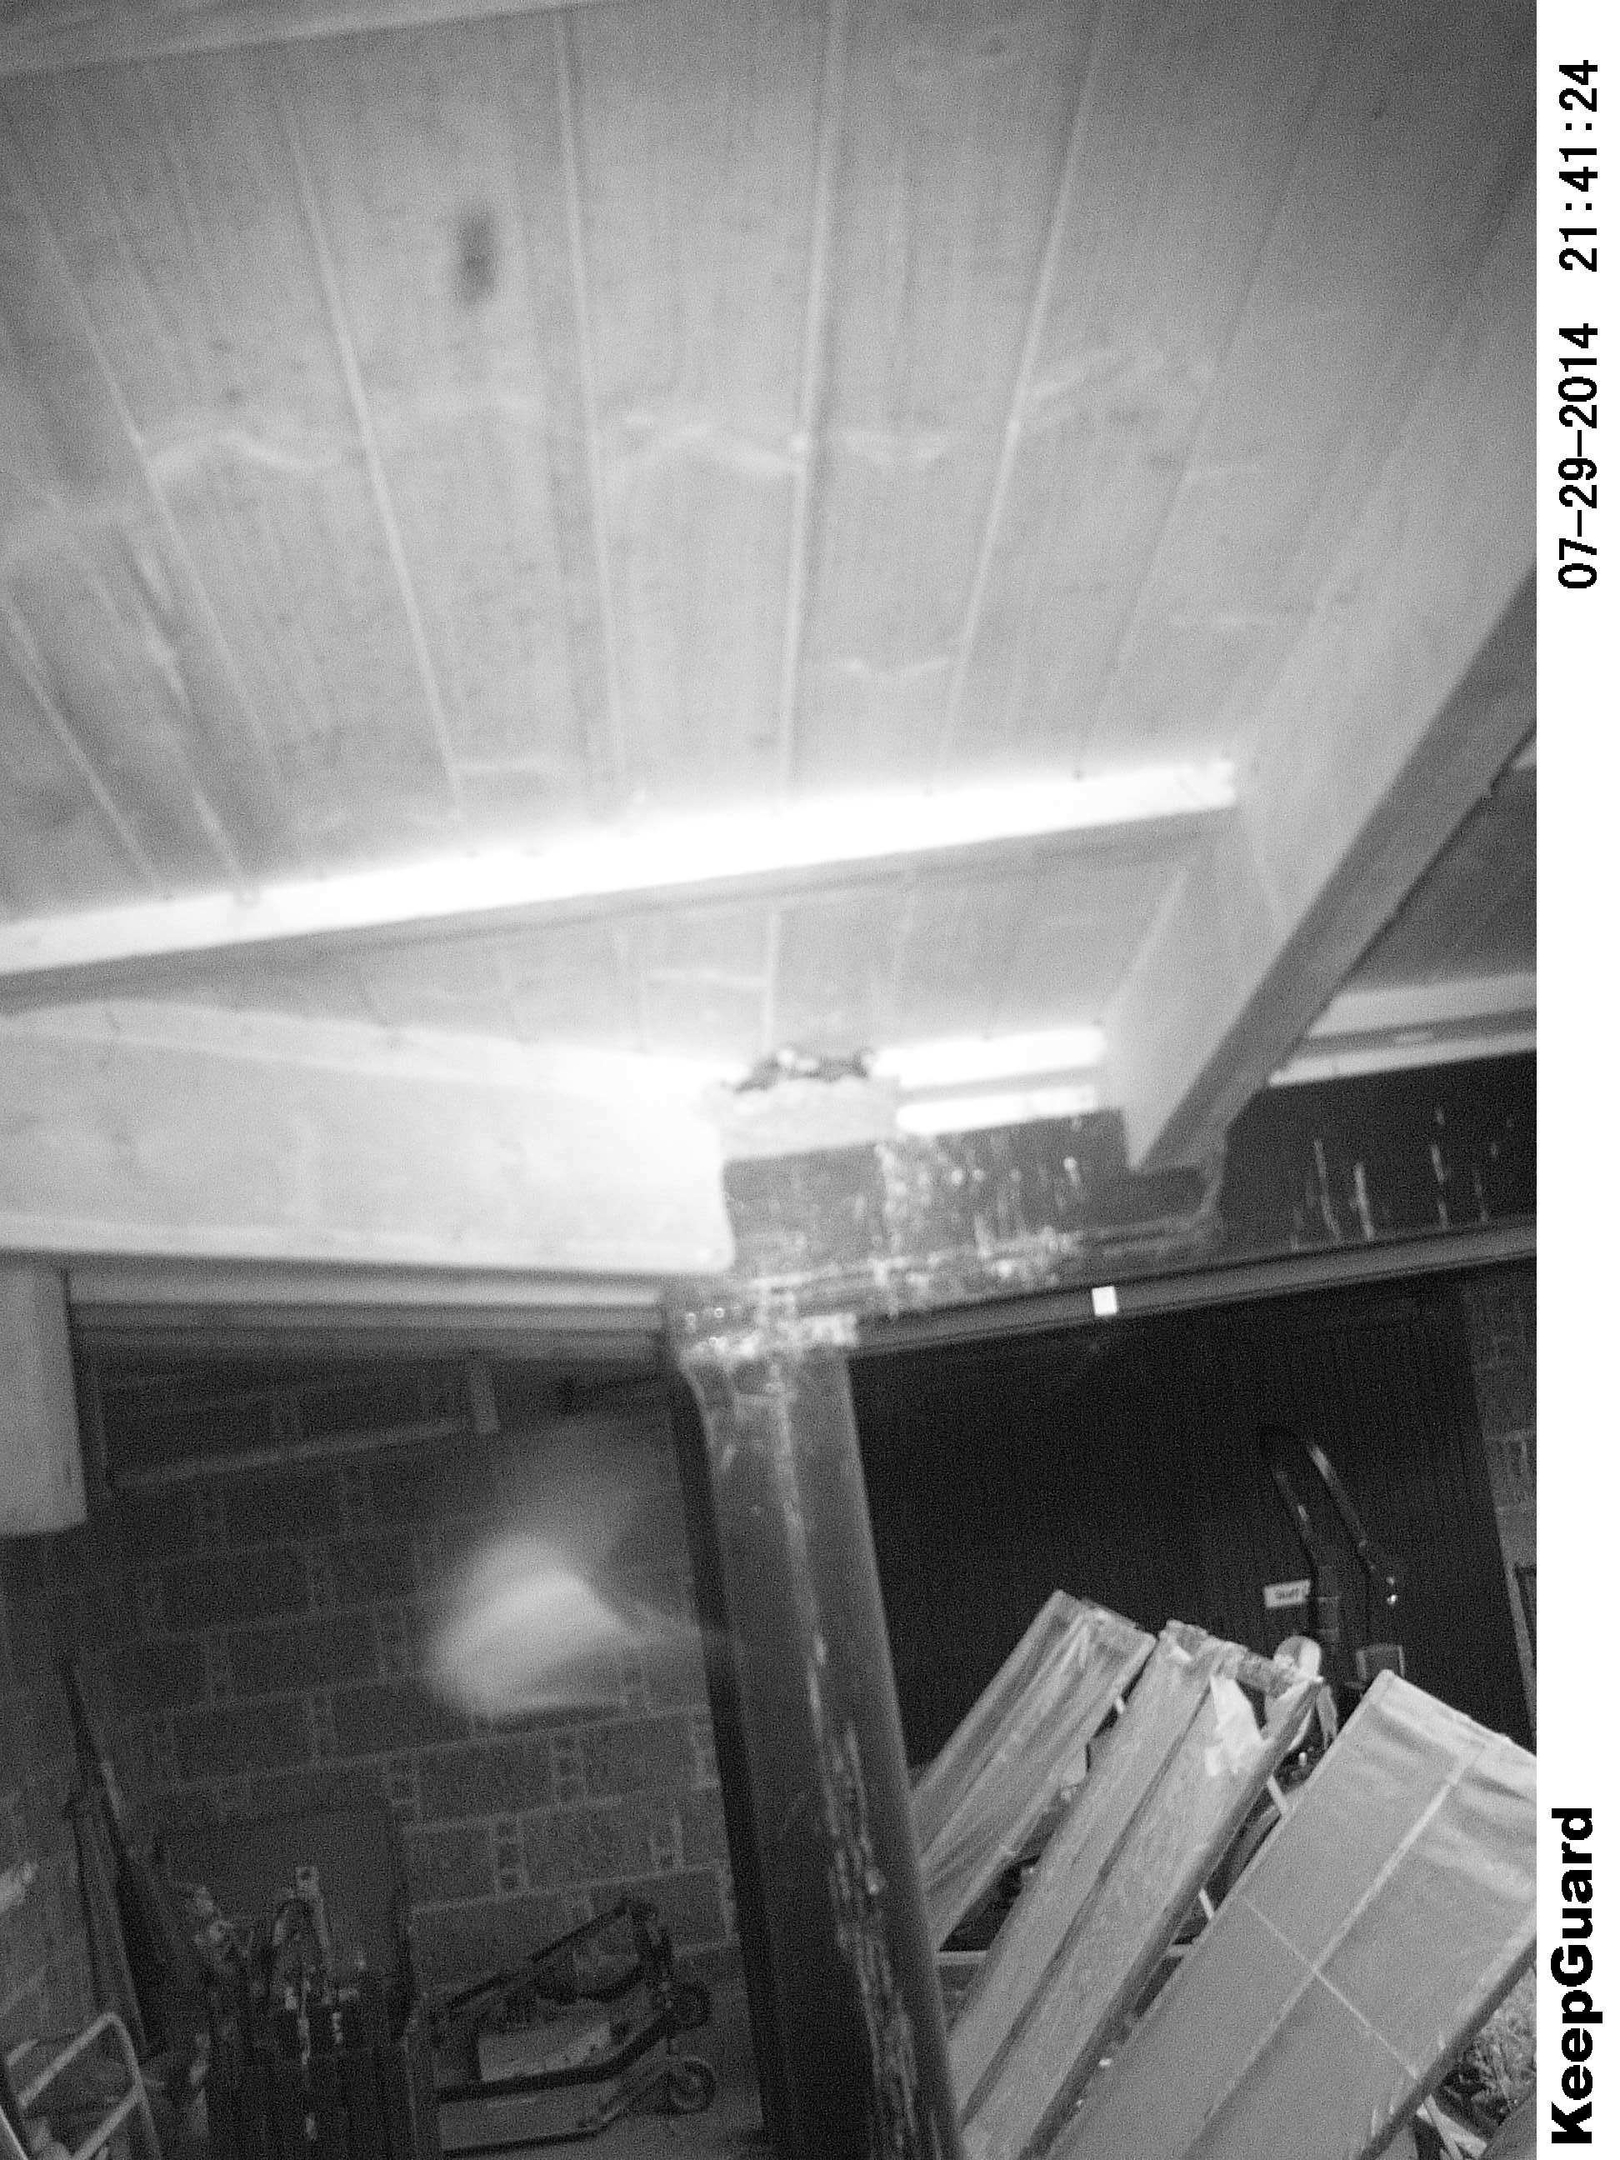 """Staff at Drum Castle believe they have captured a ghost on camera after finding a """"strange mist"""" in their photographs"""